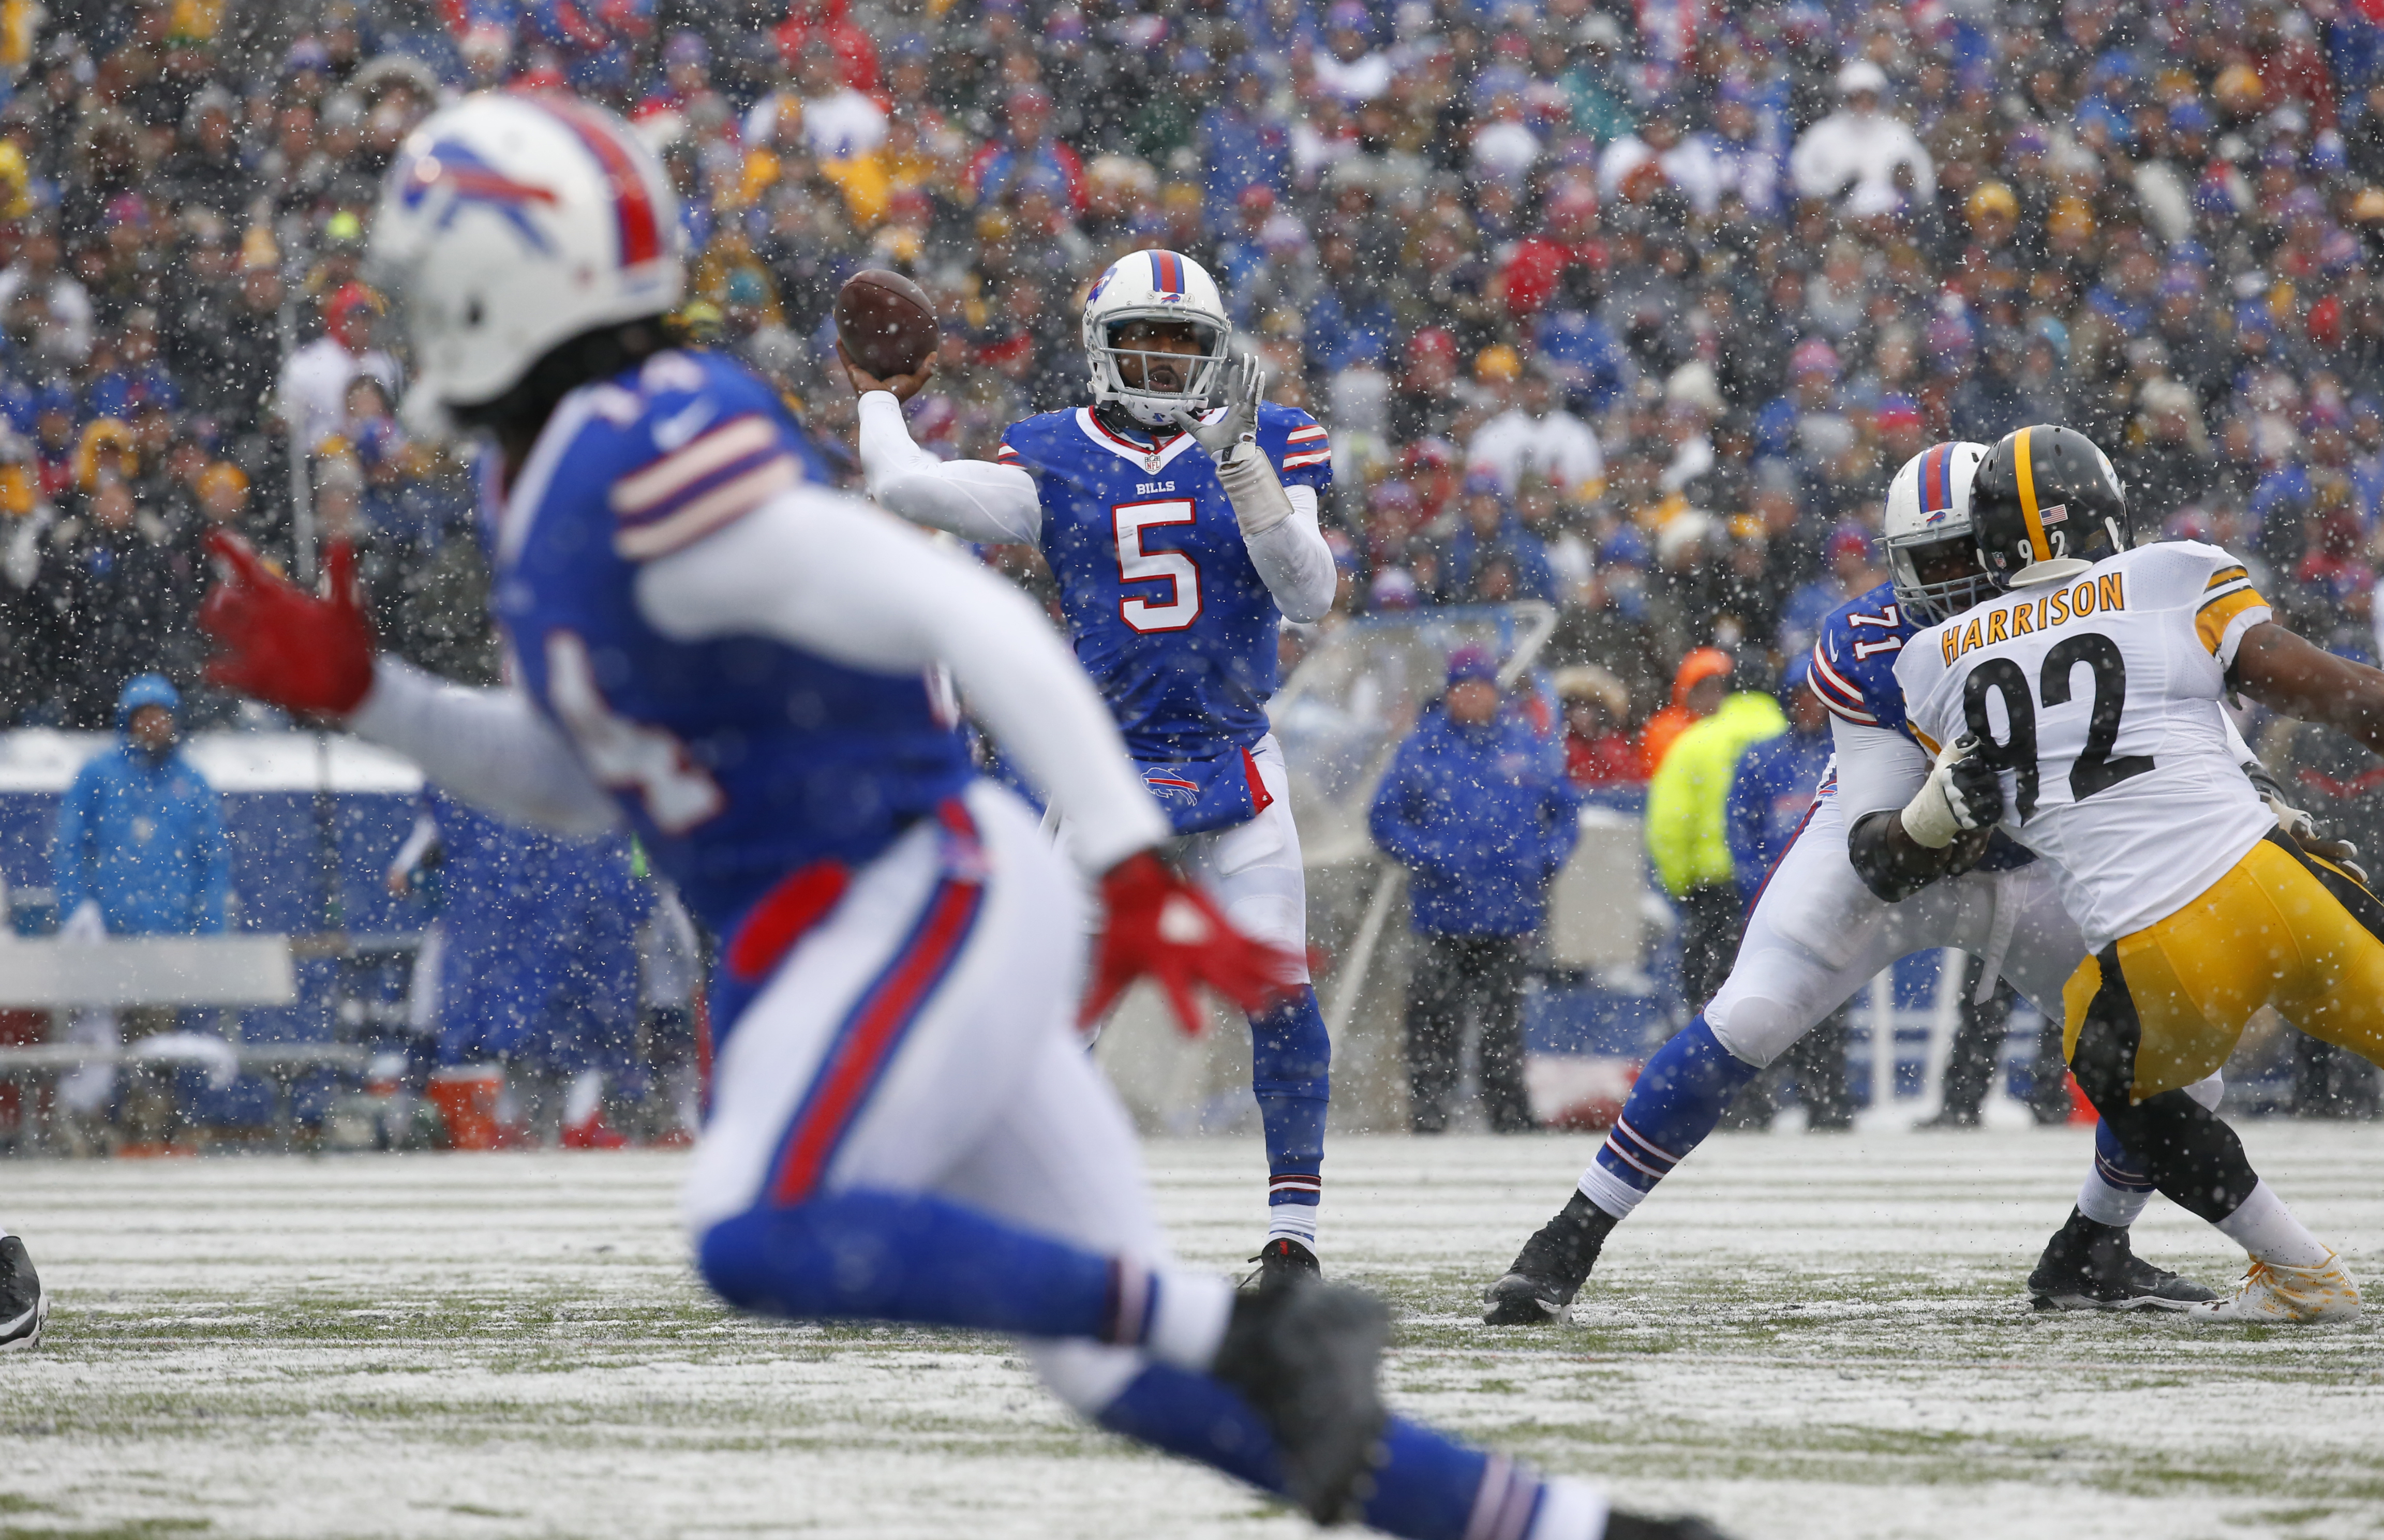 Buffalo Bills quarterback Tyrod Taylor throws against the Pittsburgh Steelers during second quarter action at New Era Field on Sunday, Dec. 11, 2016. (Harry Scull Jr./Buffalo News)